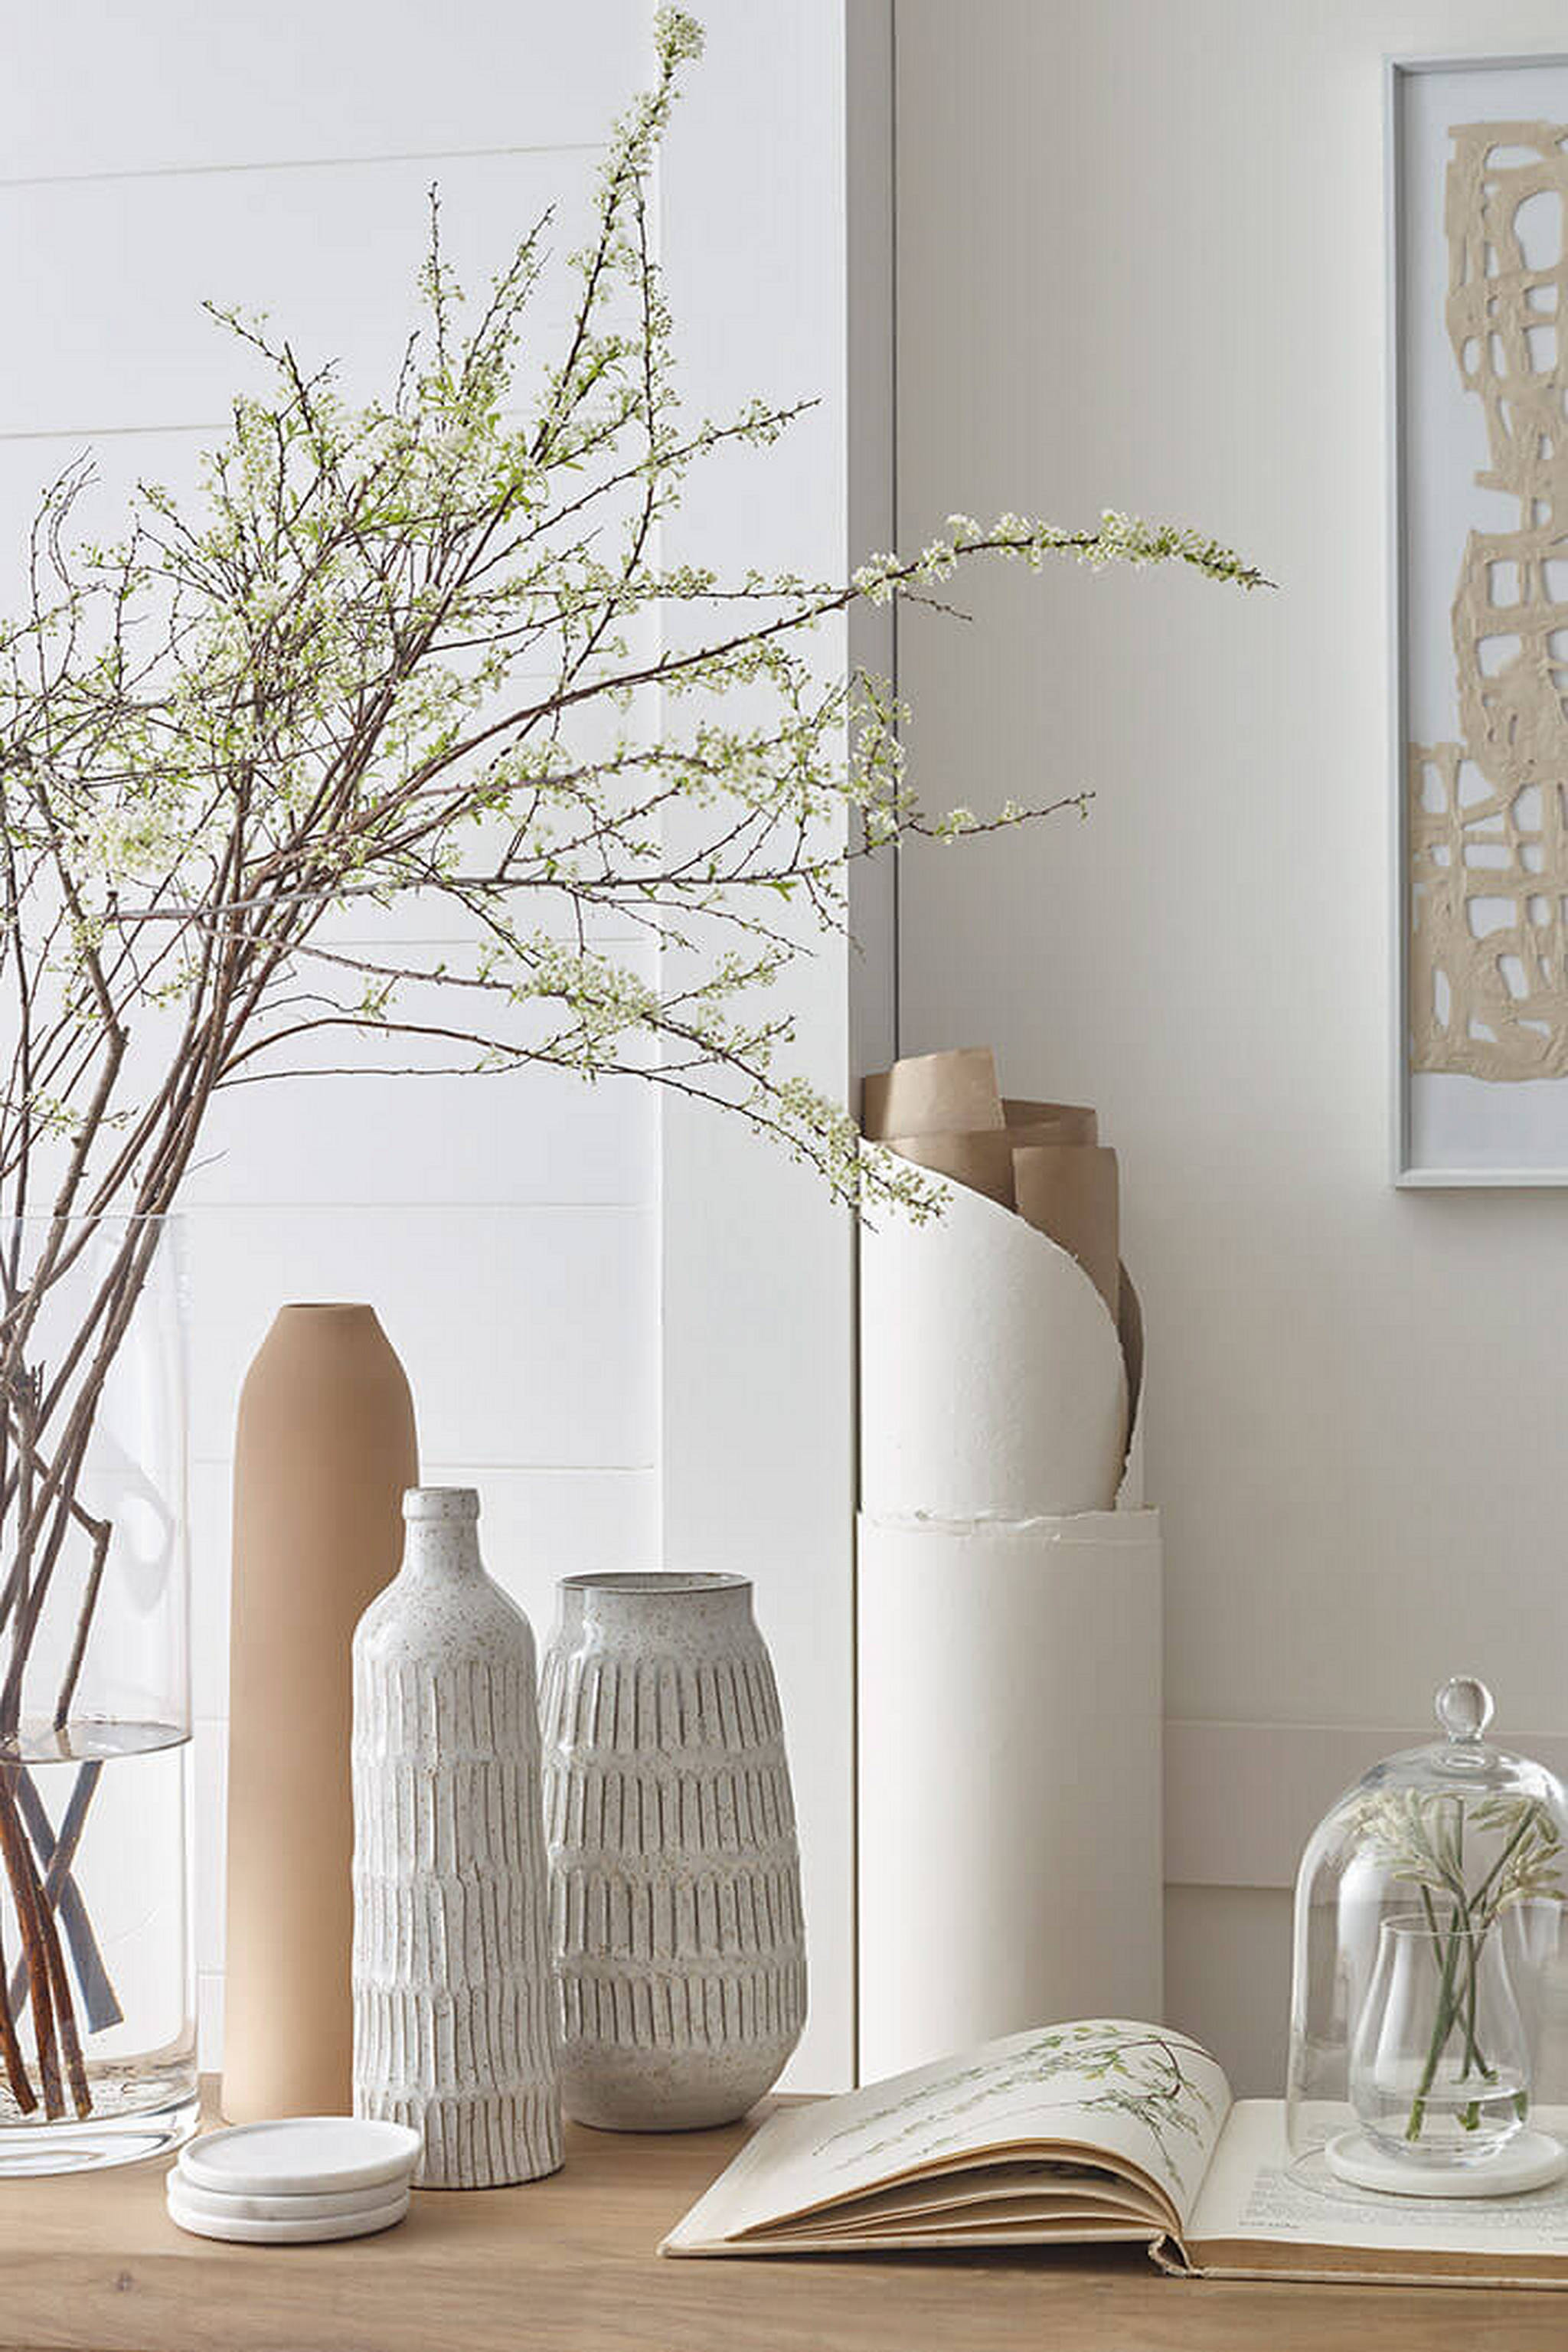 Room for Wellbeing: Vases